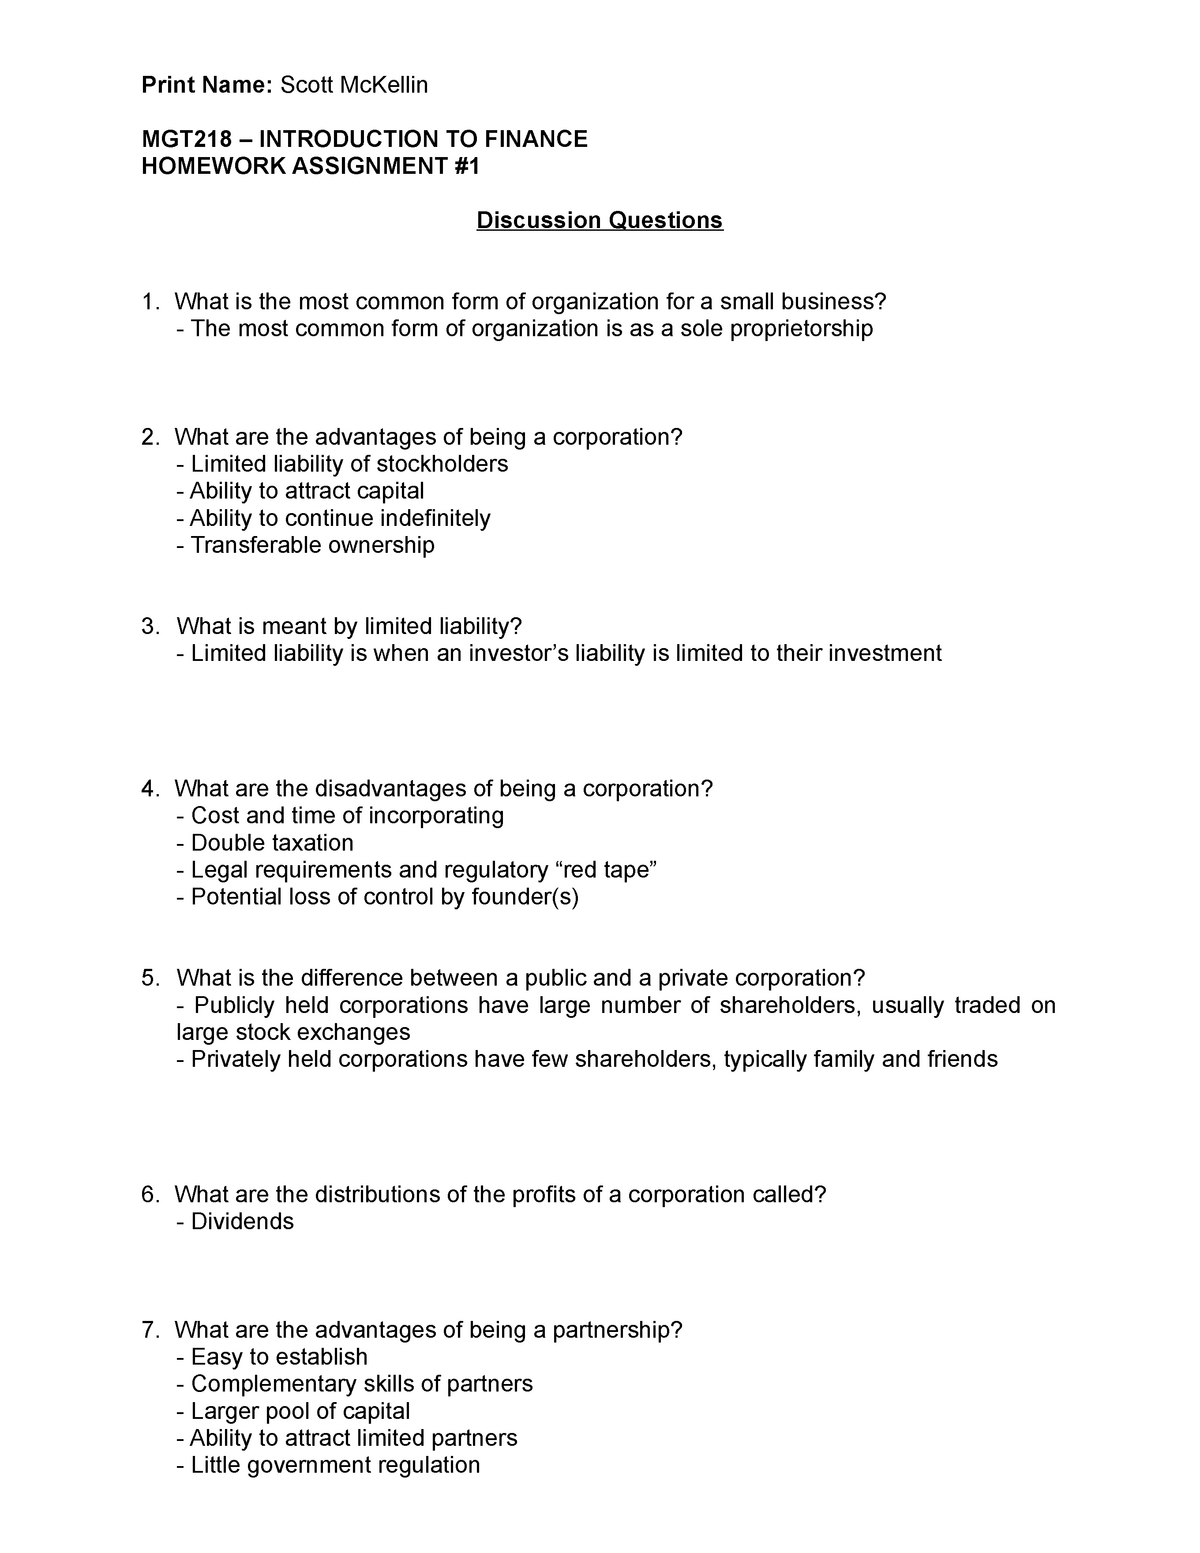 MGT218 - Assignment 01 - Discussion Questions - MGT 218